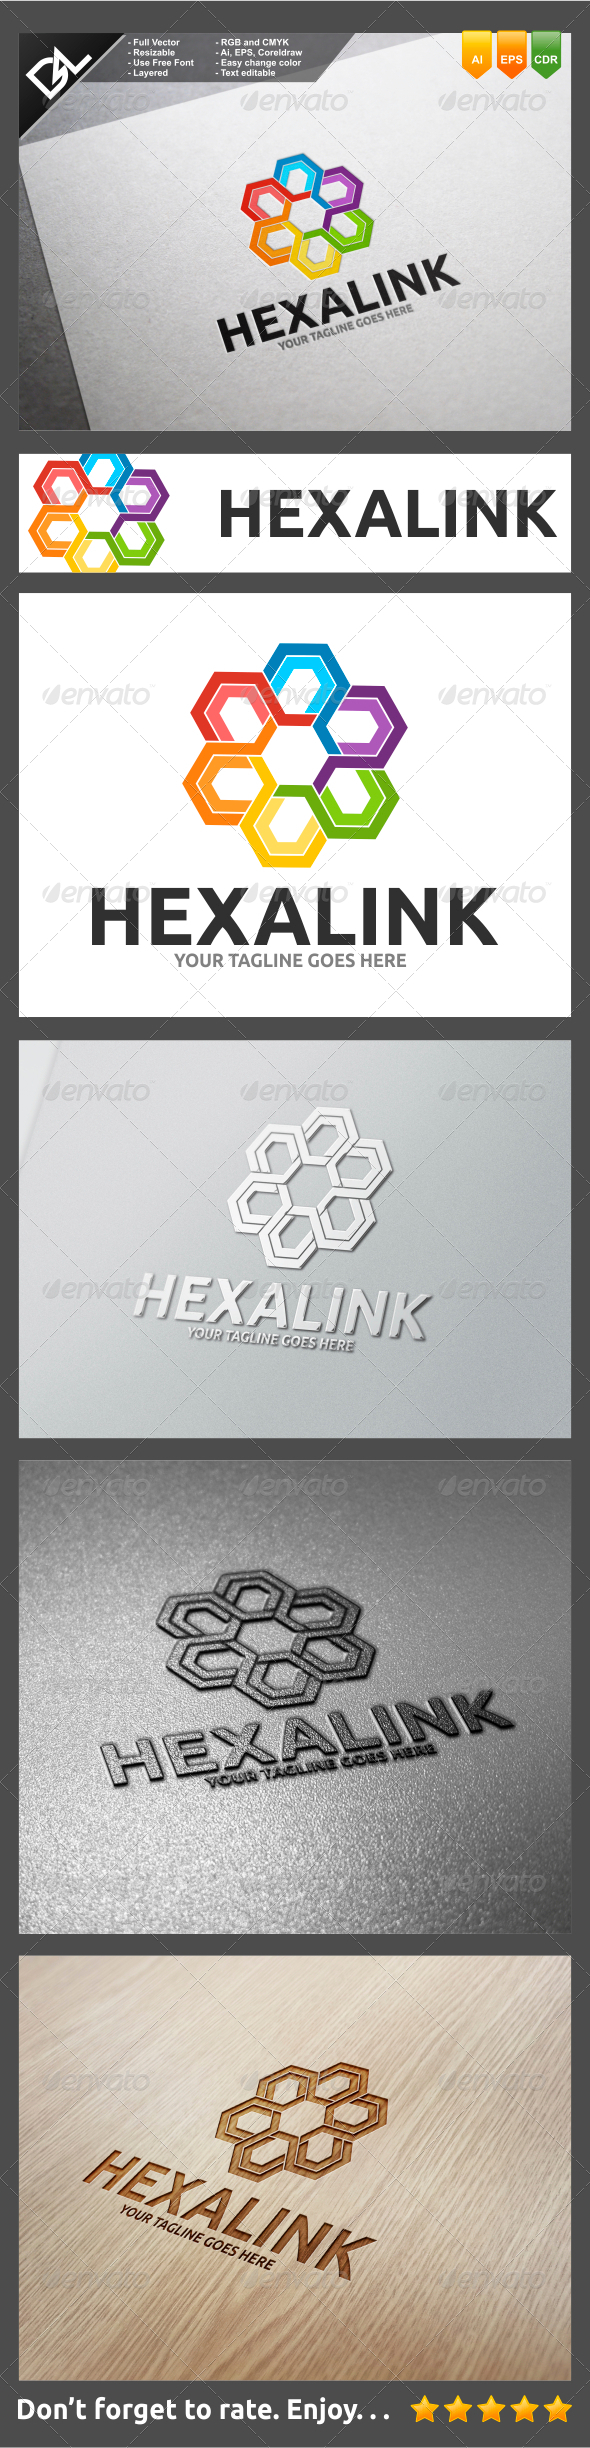 GraphicRiver Hexalink 8257667